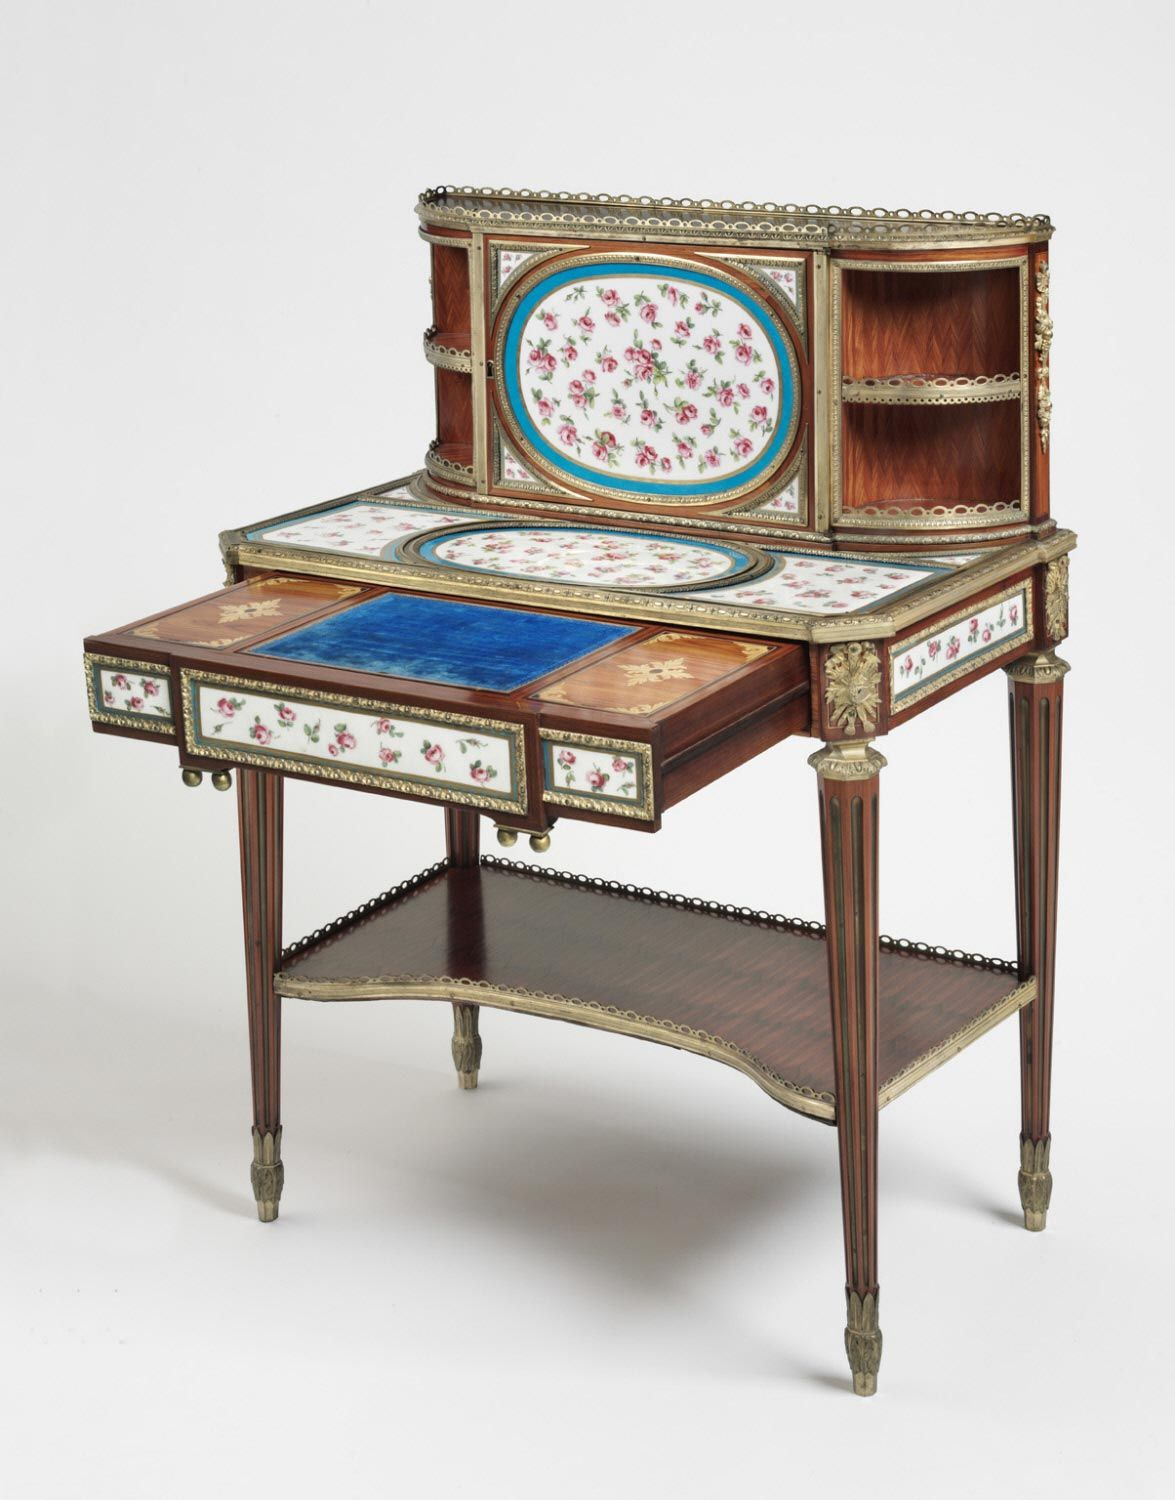 Writing Desk Bonheur Du Jour Made By Martin Carlin Plaques Made By The  Sèvres Porcelain Factory